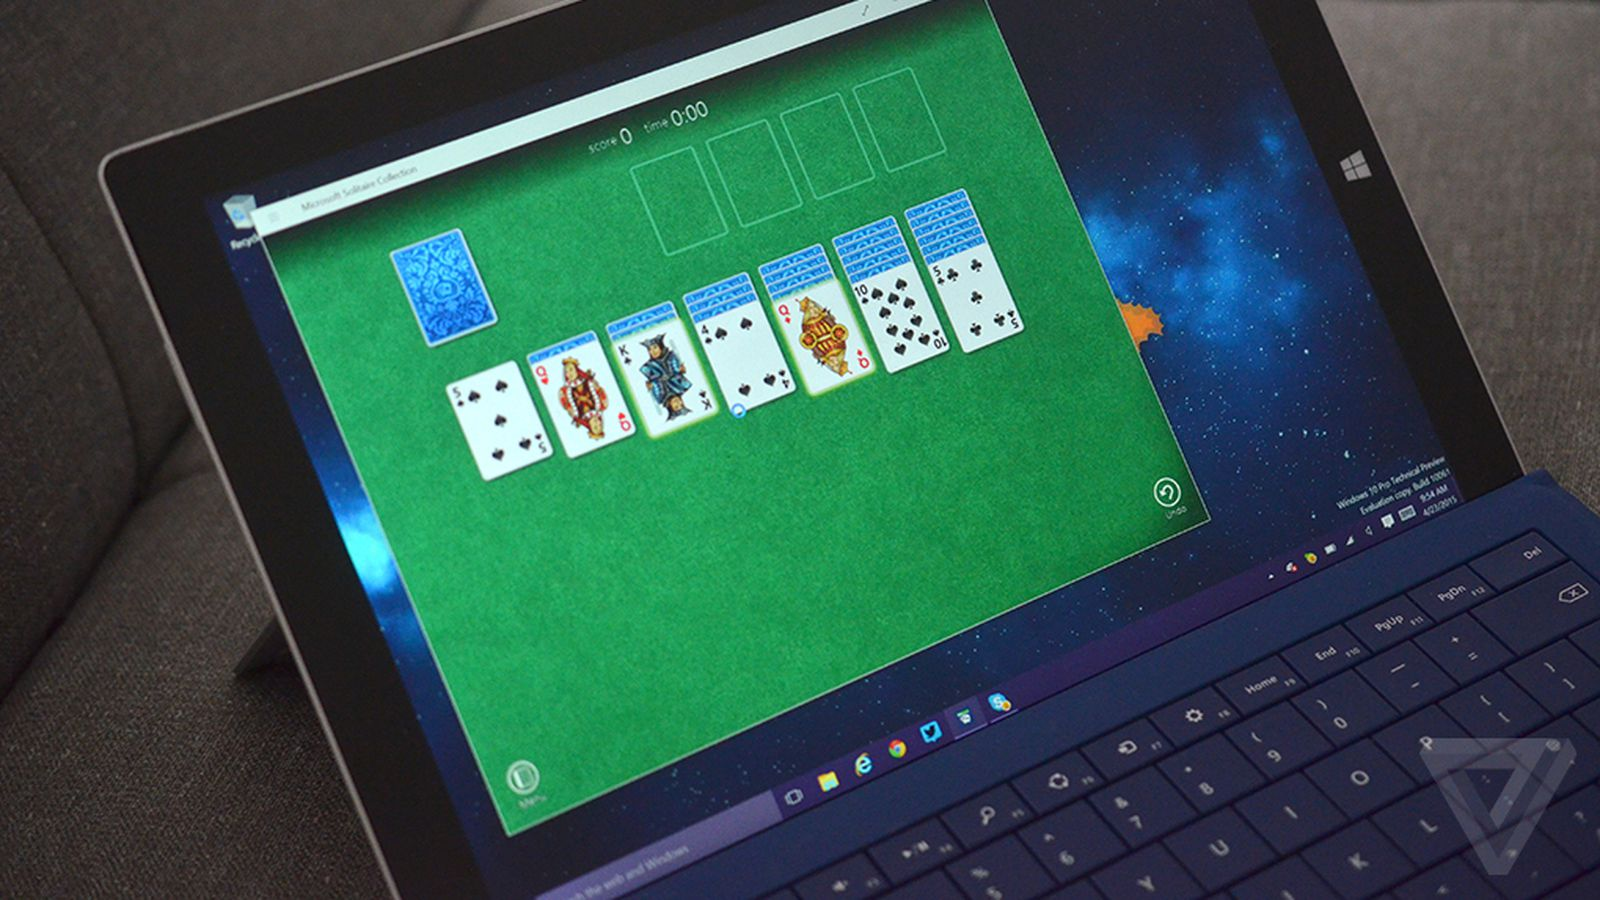 Microsoft is bringing Solitaire back to Windows 10 - The Verge